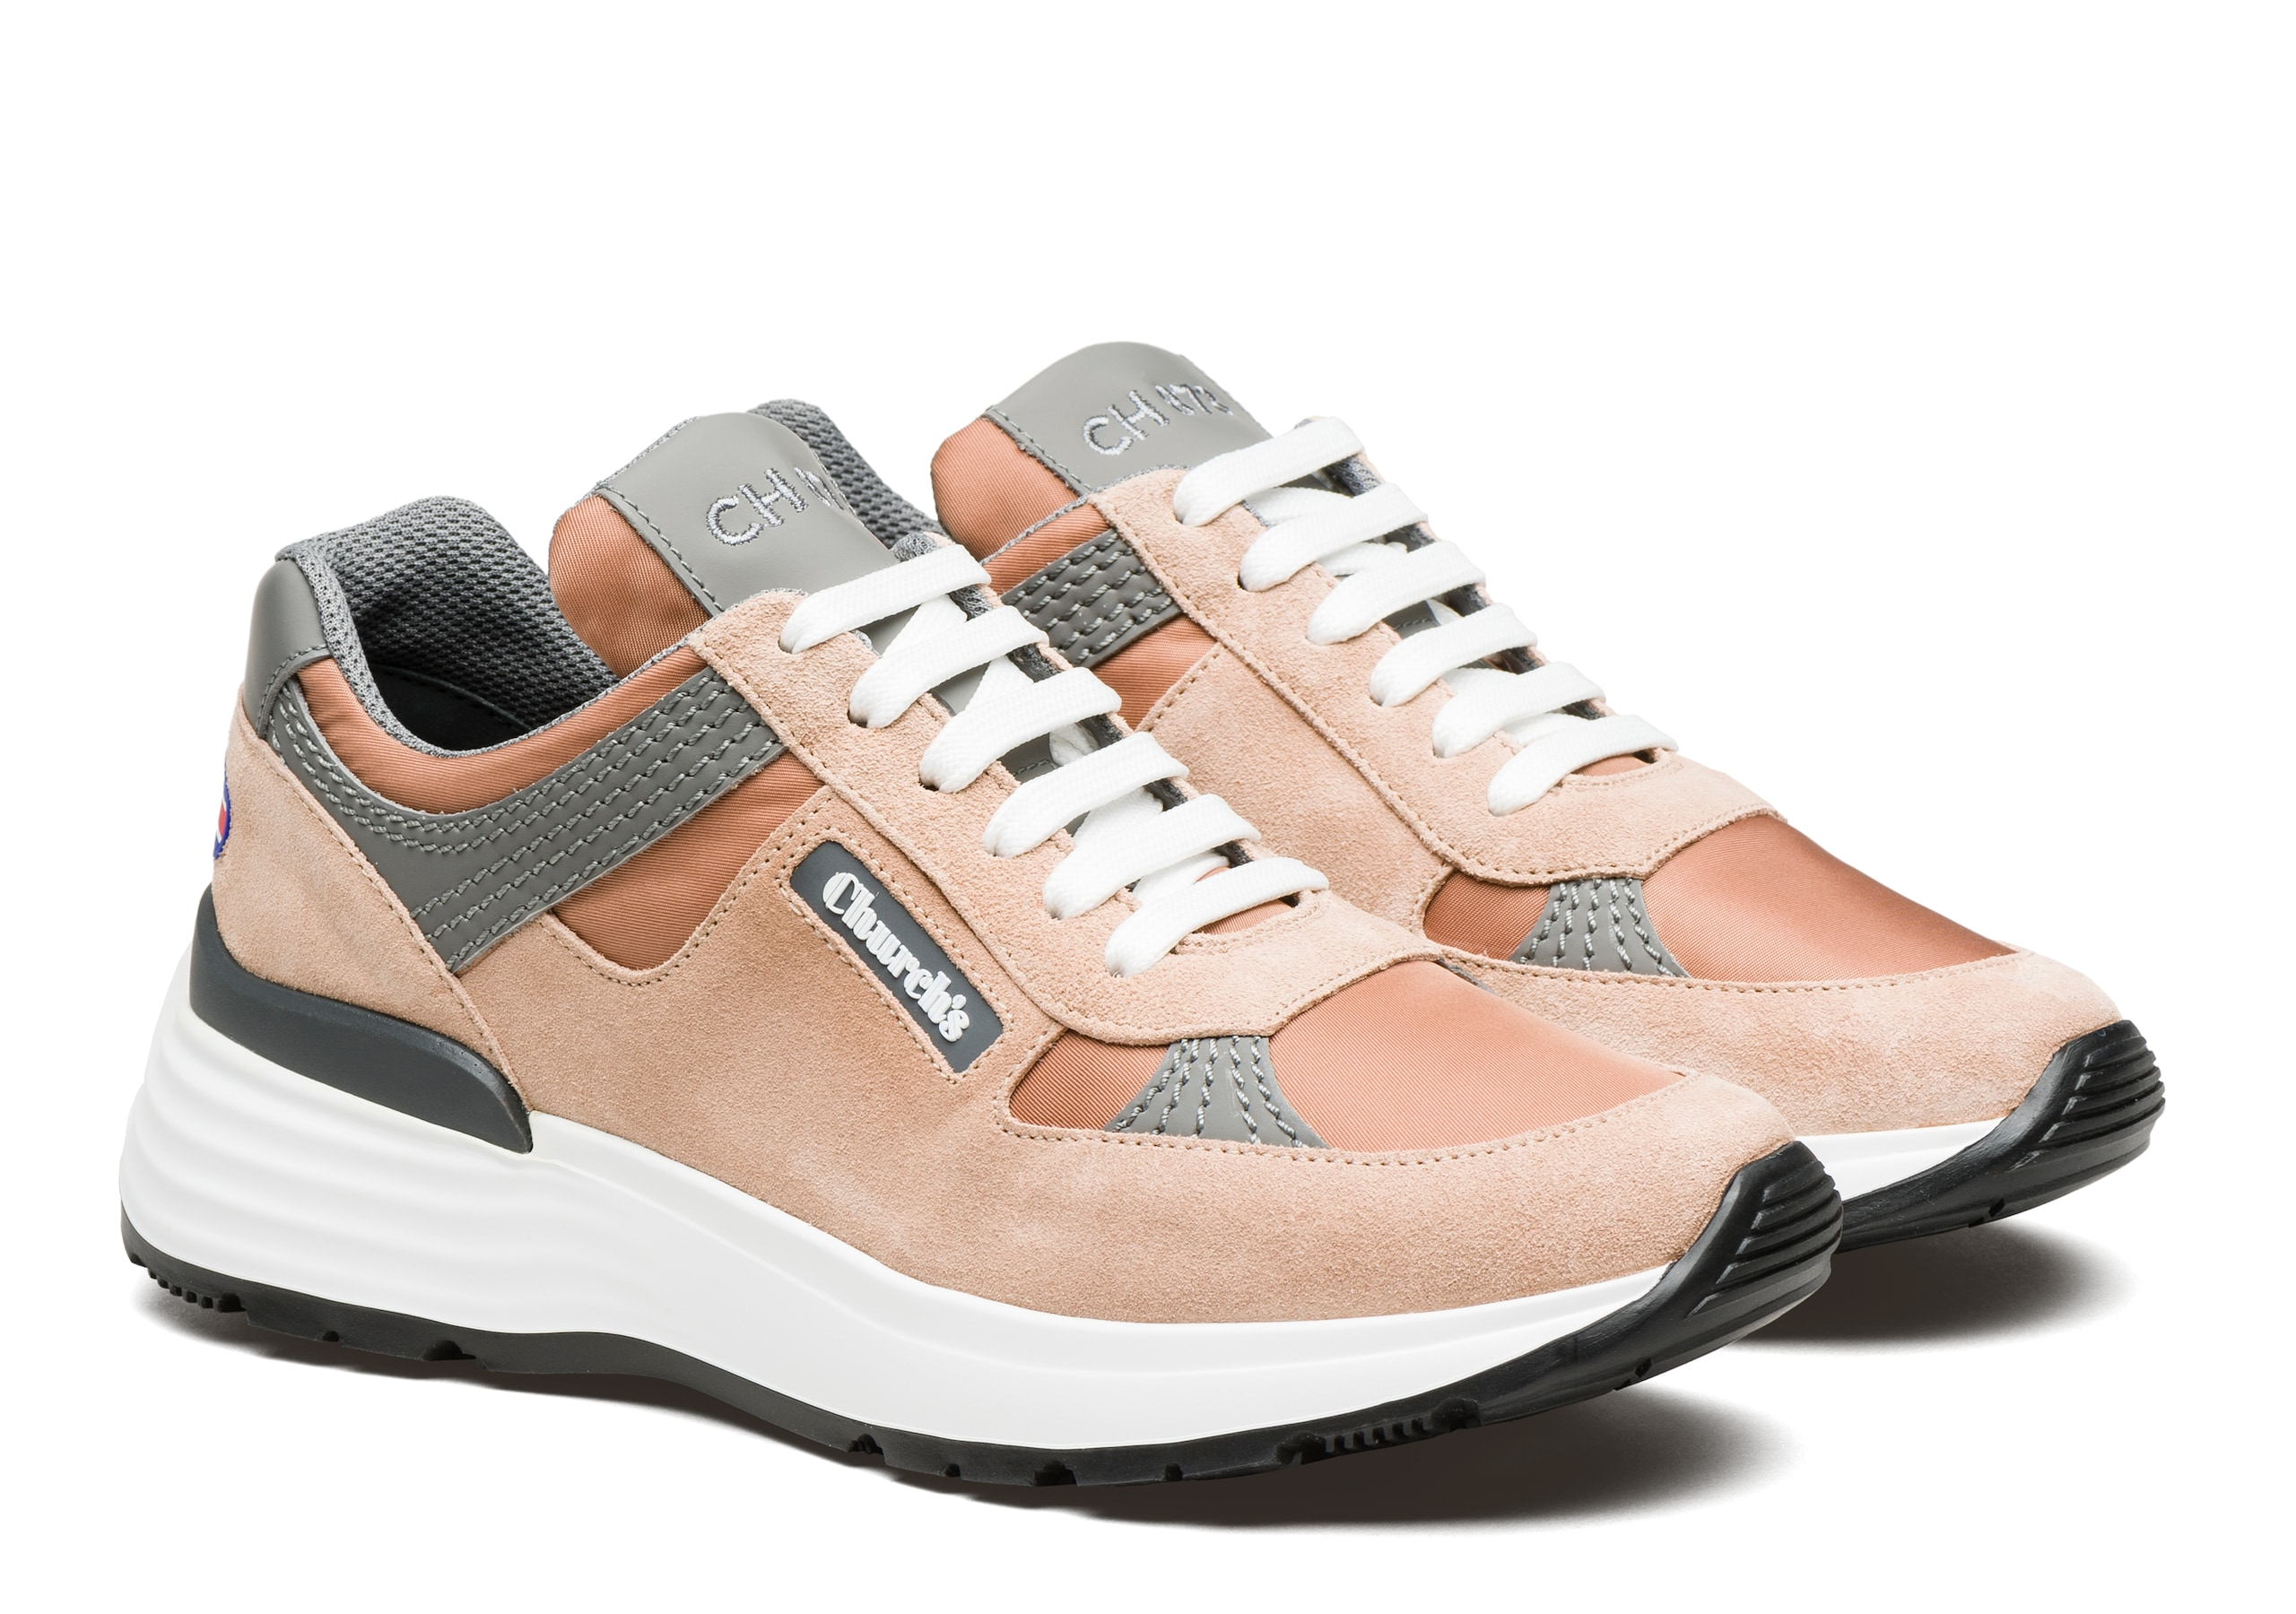 Ch873 Church's Suede Tech Retro Sneaker Pink